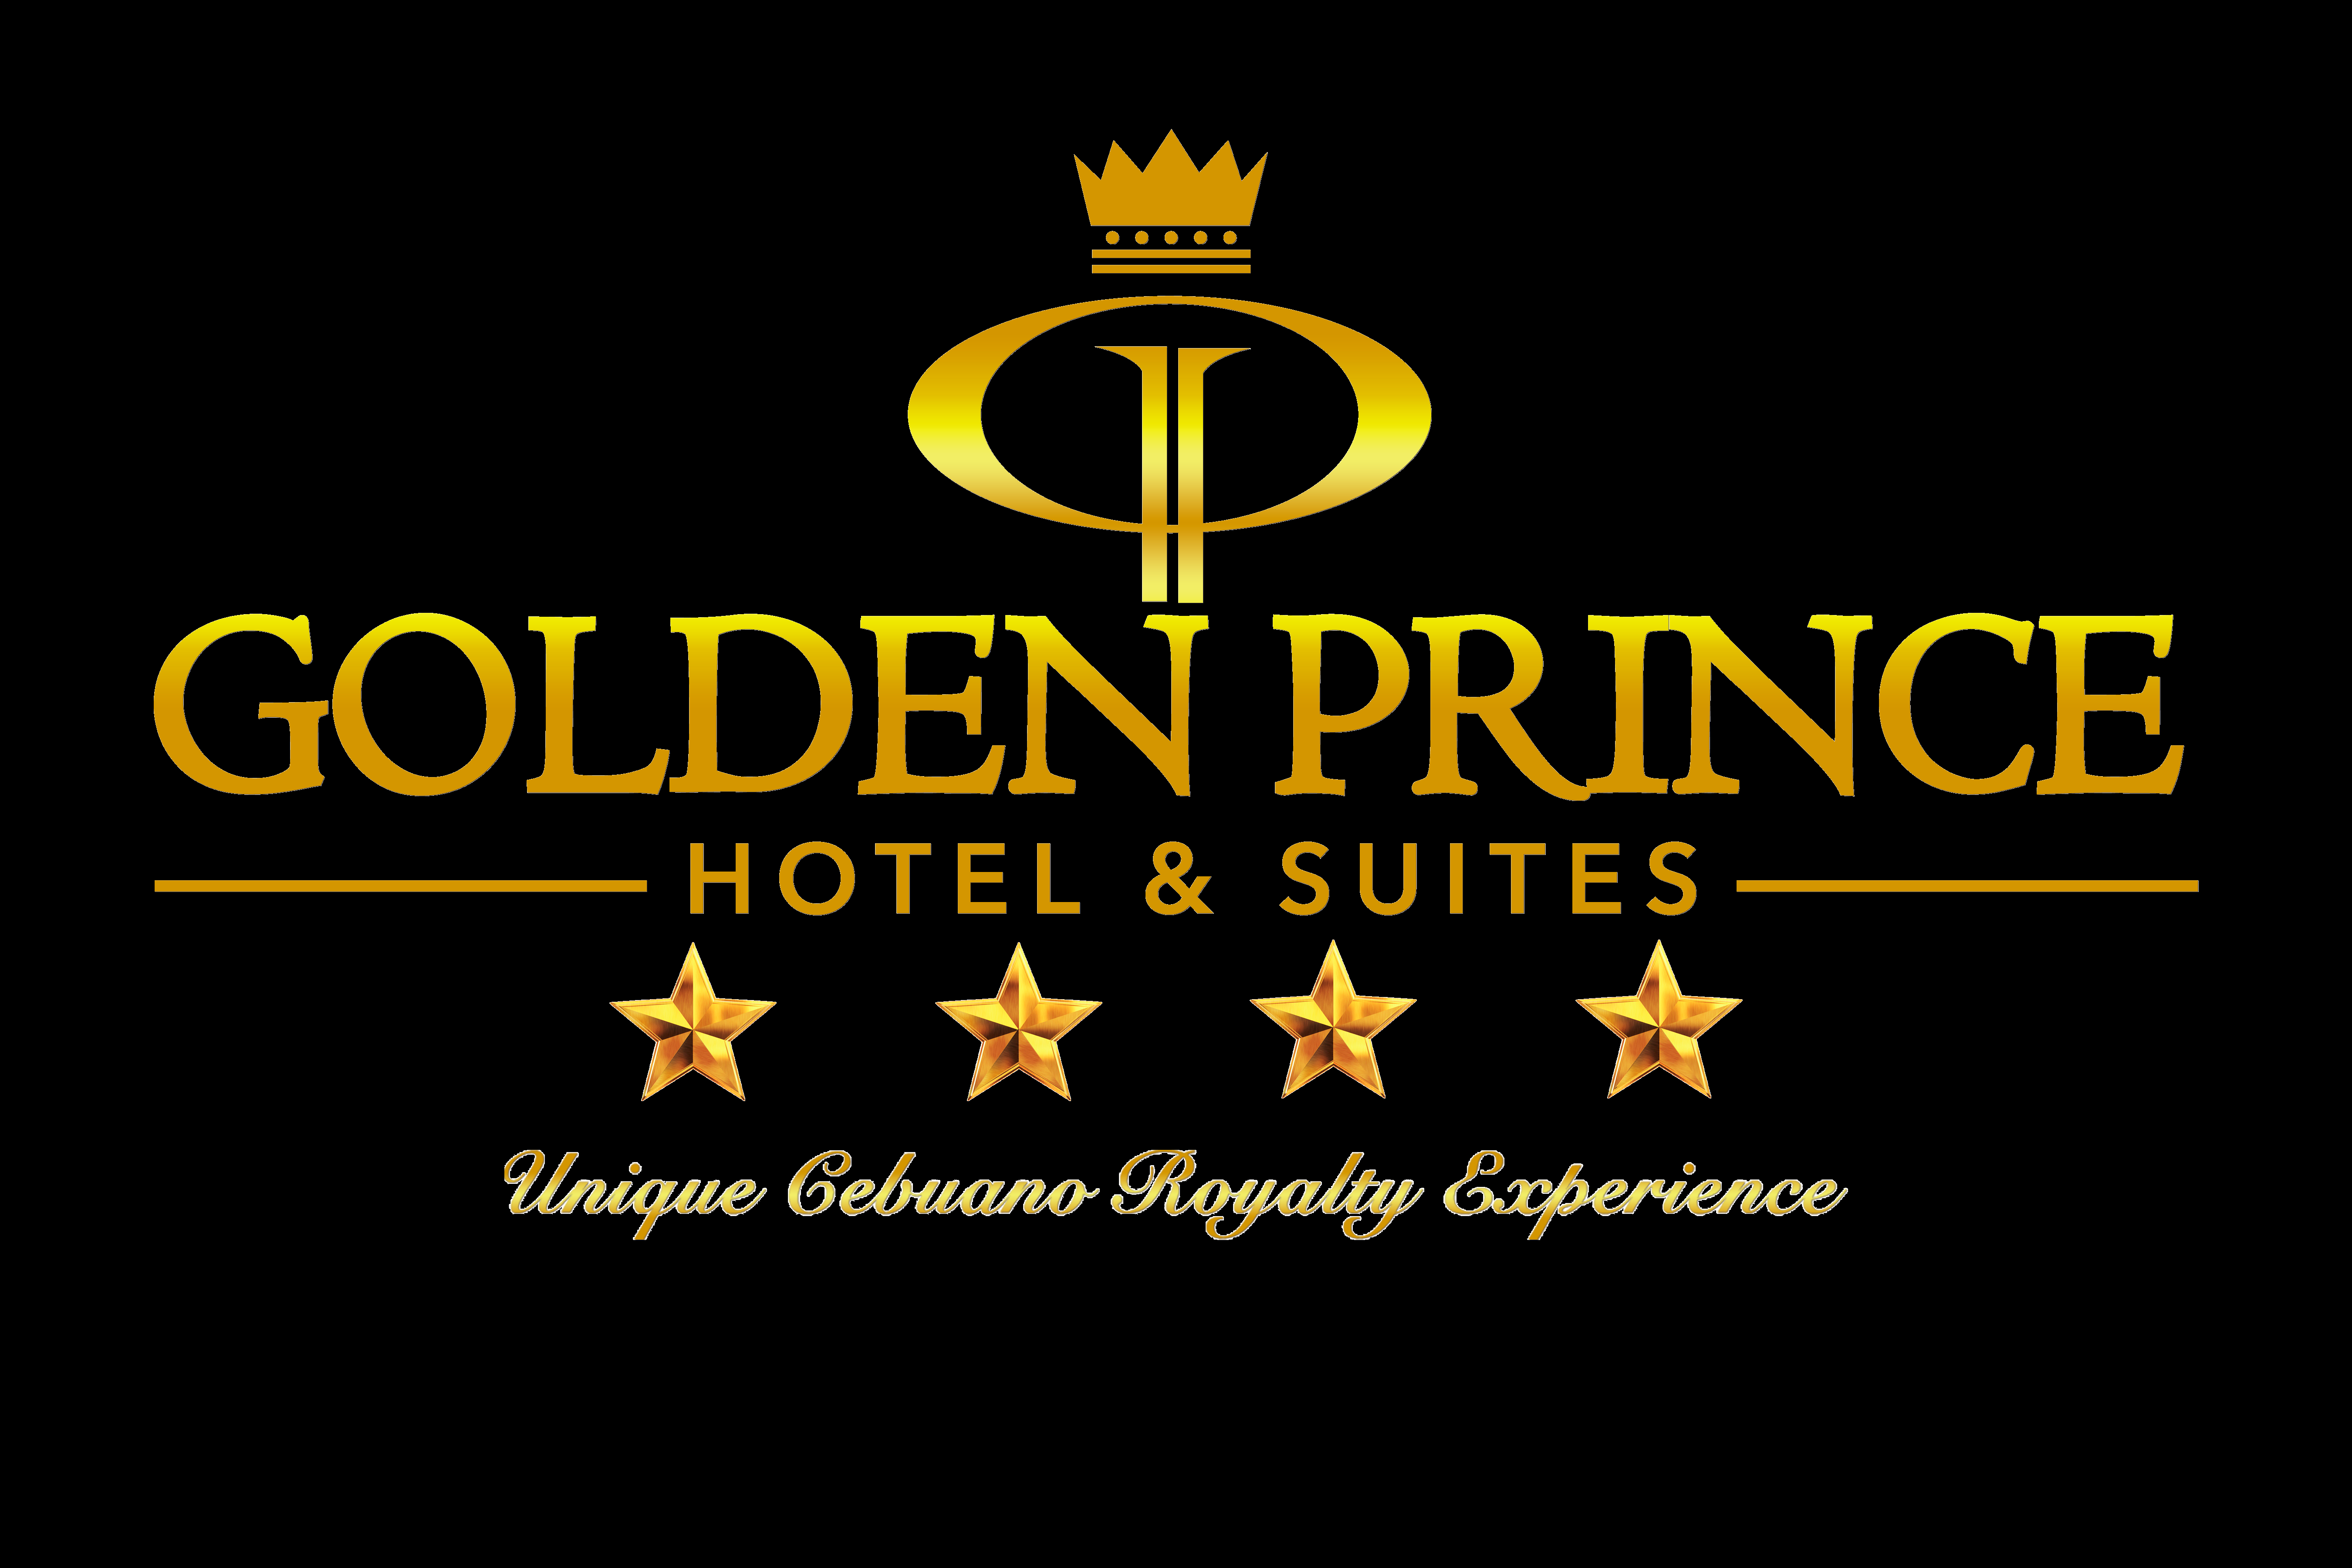 Golden Prince Hotel & Suites